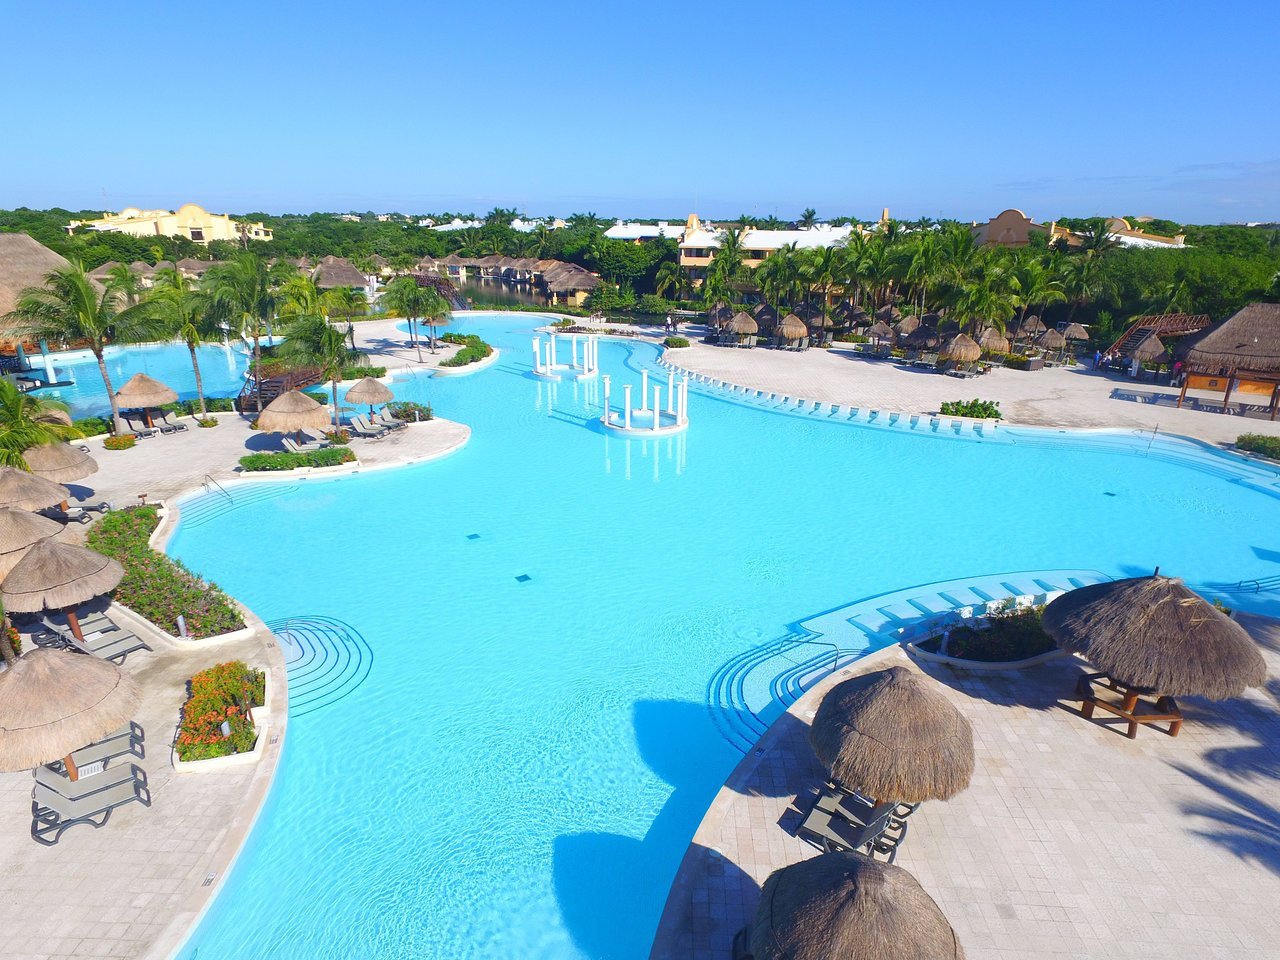 GRAND PALLADIUM COLONIAL RESORT & SPA Riviera Maya Mexico Akumal